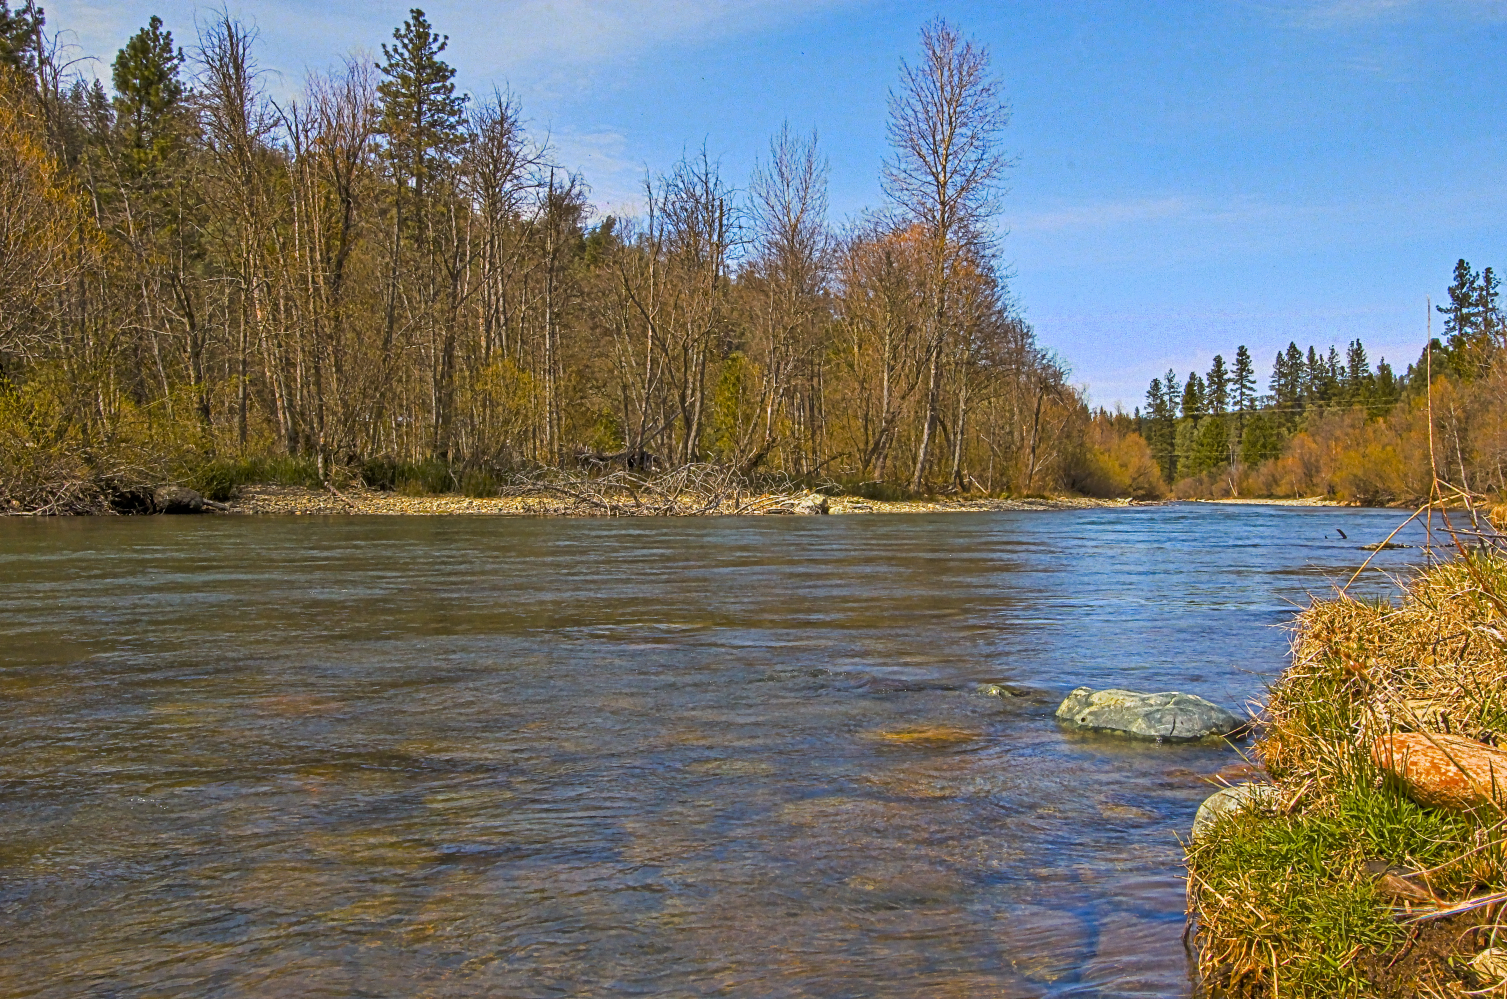 Upstream River Image